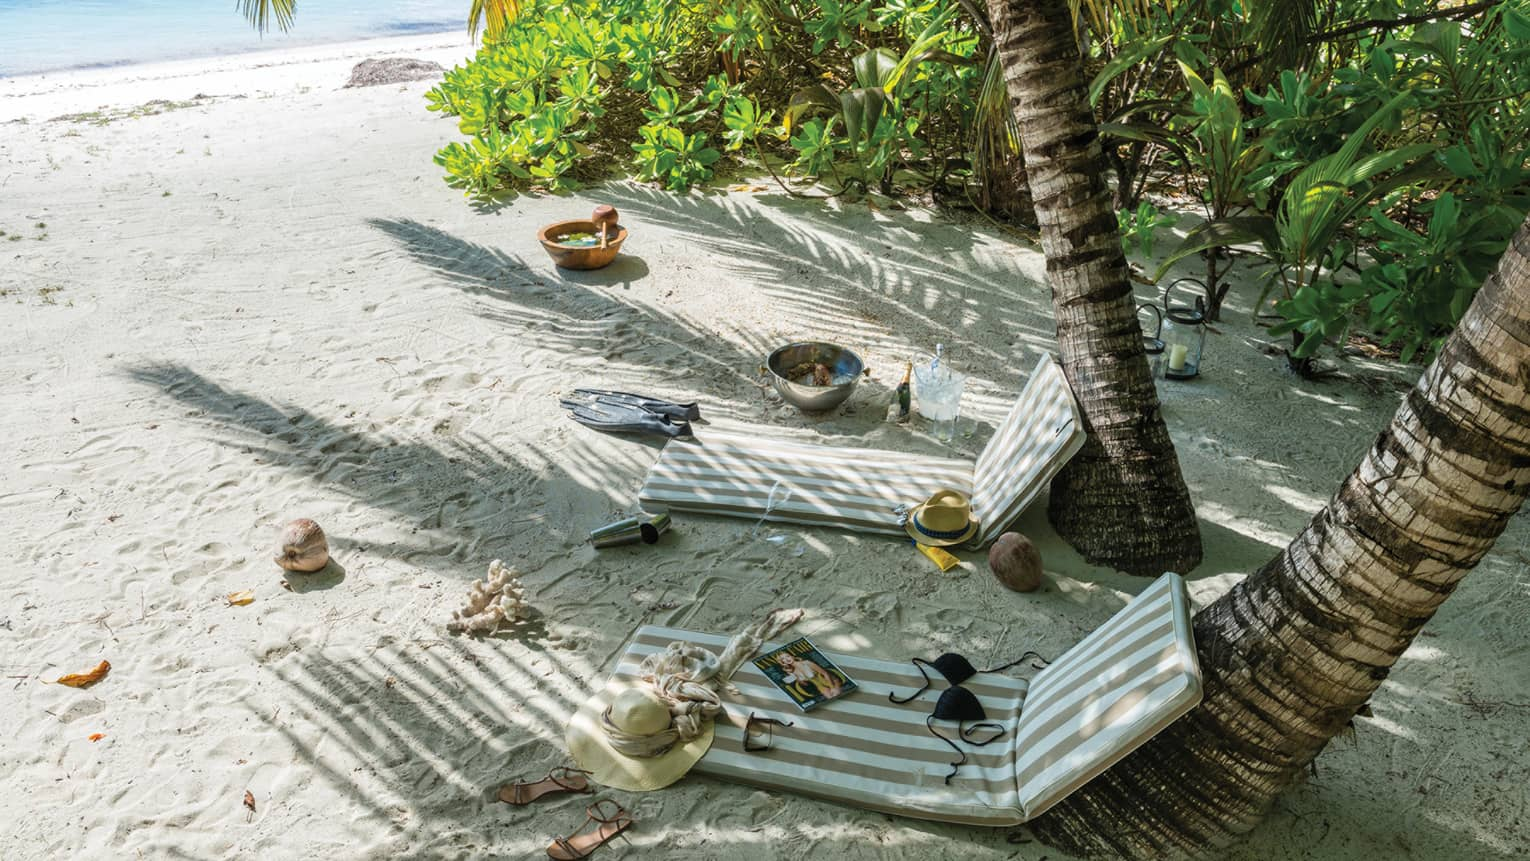 Striped patio chair cushions lean up against palm tree trunks on sandy beach, magazines, hats on ground